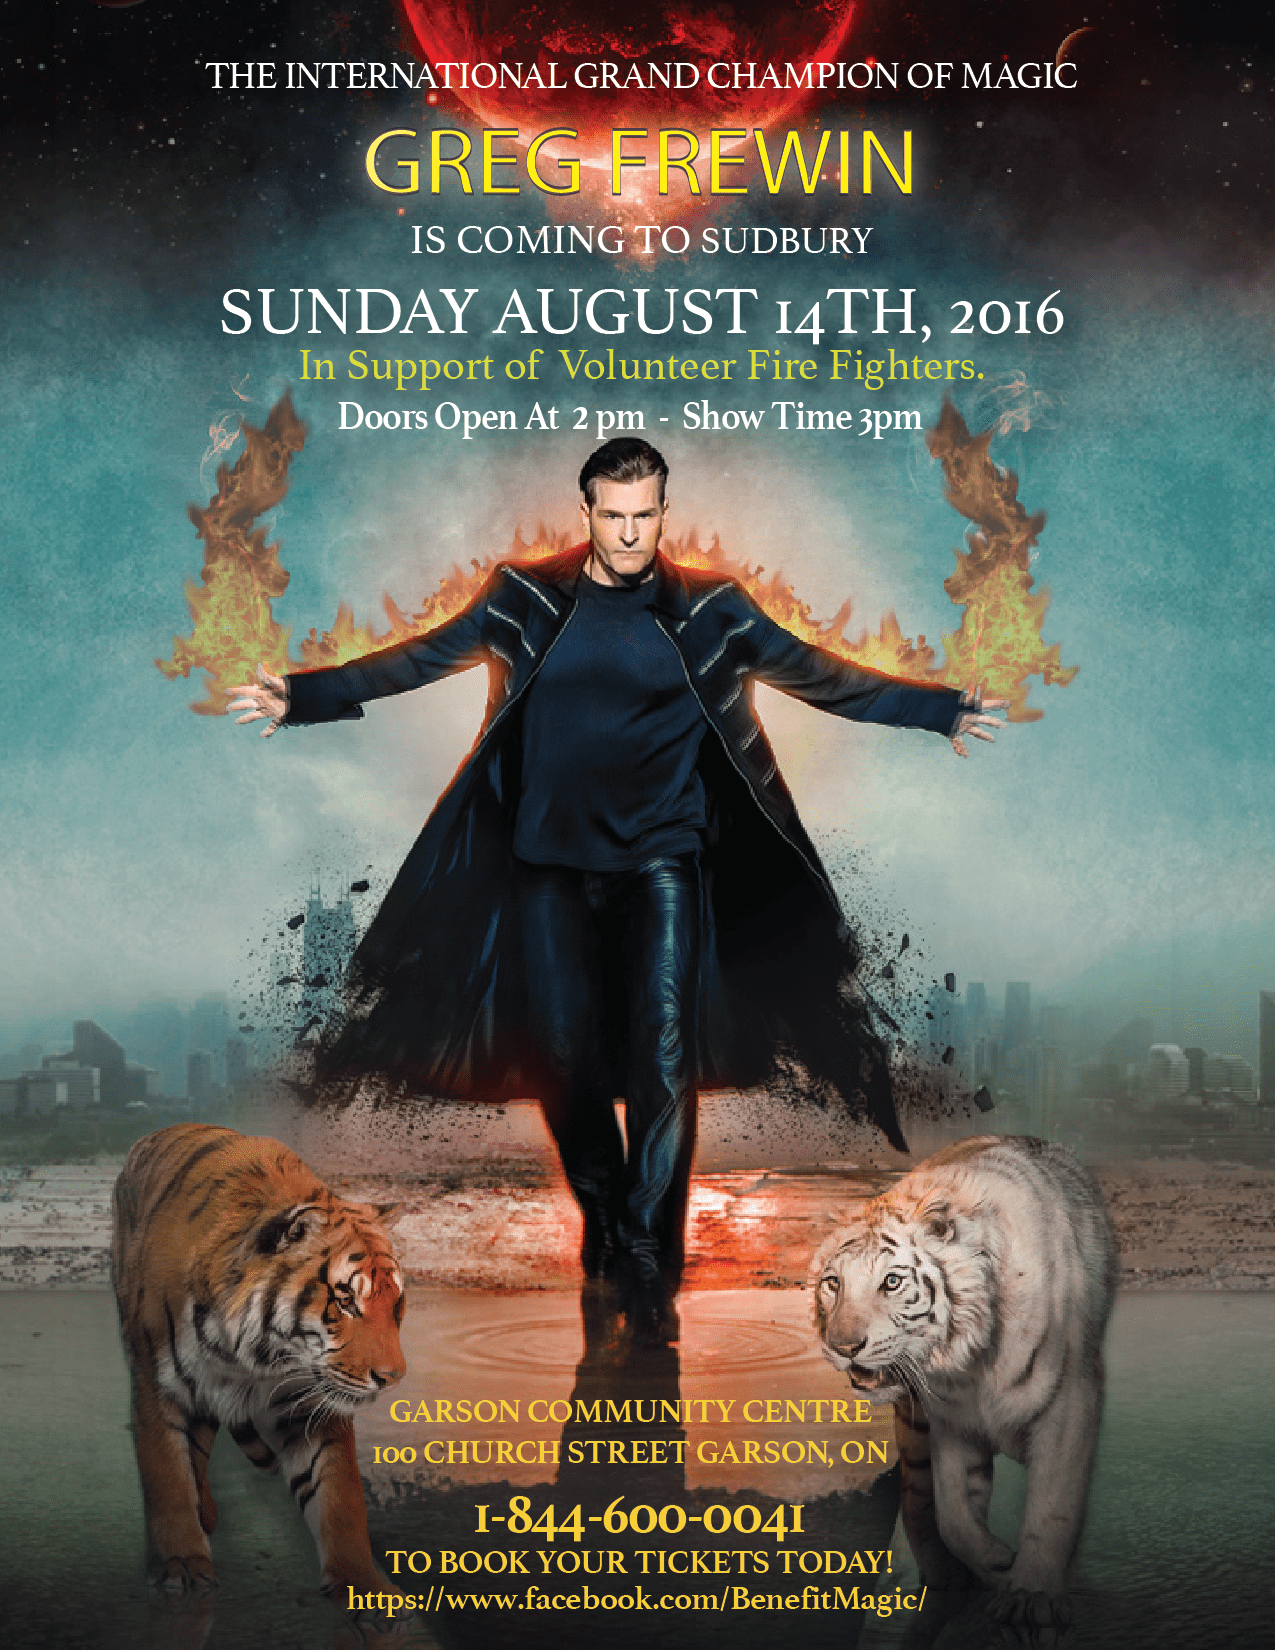 Calendar Poster 2016 : Greg frewin magic show